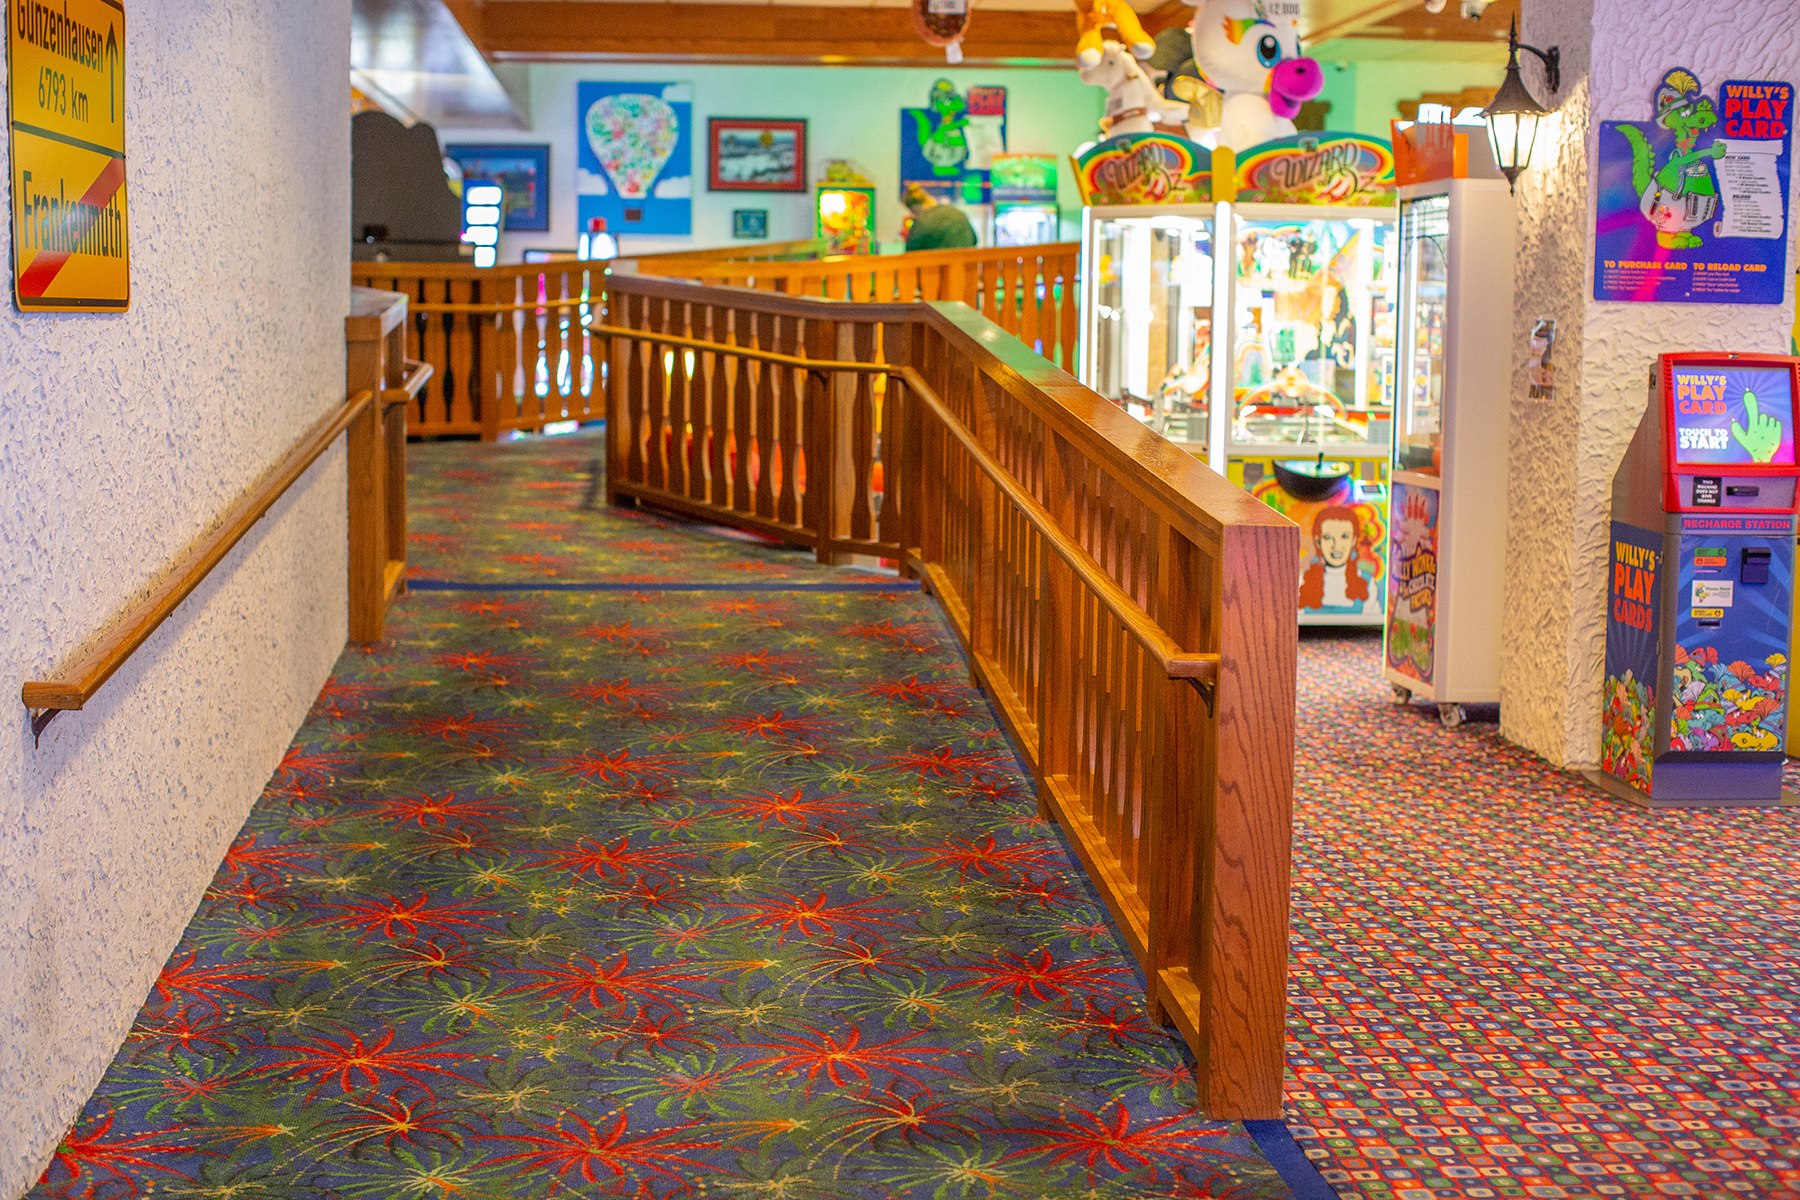 Bavarian Inn Lodge Makes for a Great Handicap-Accessible Vacation!